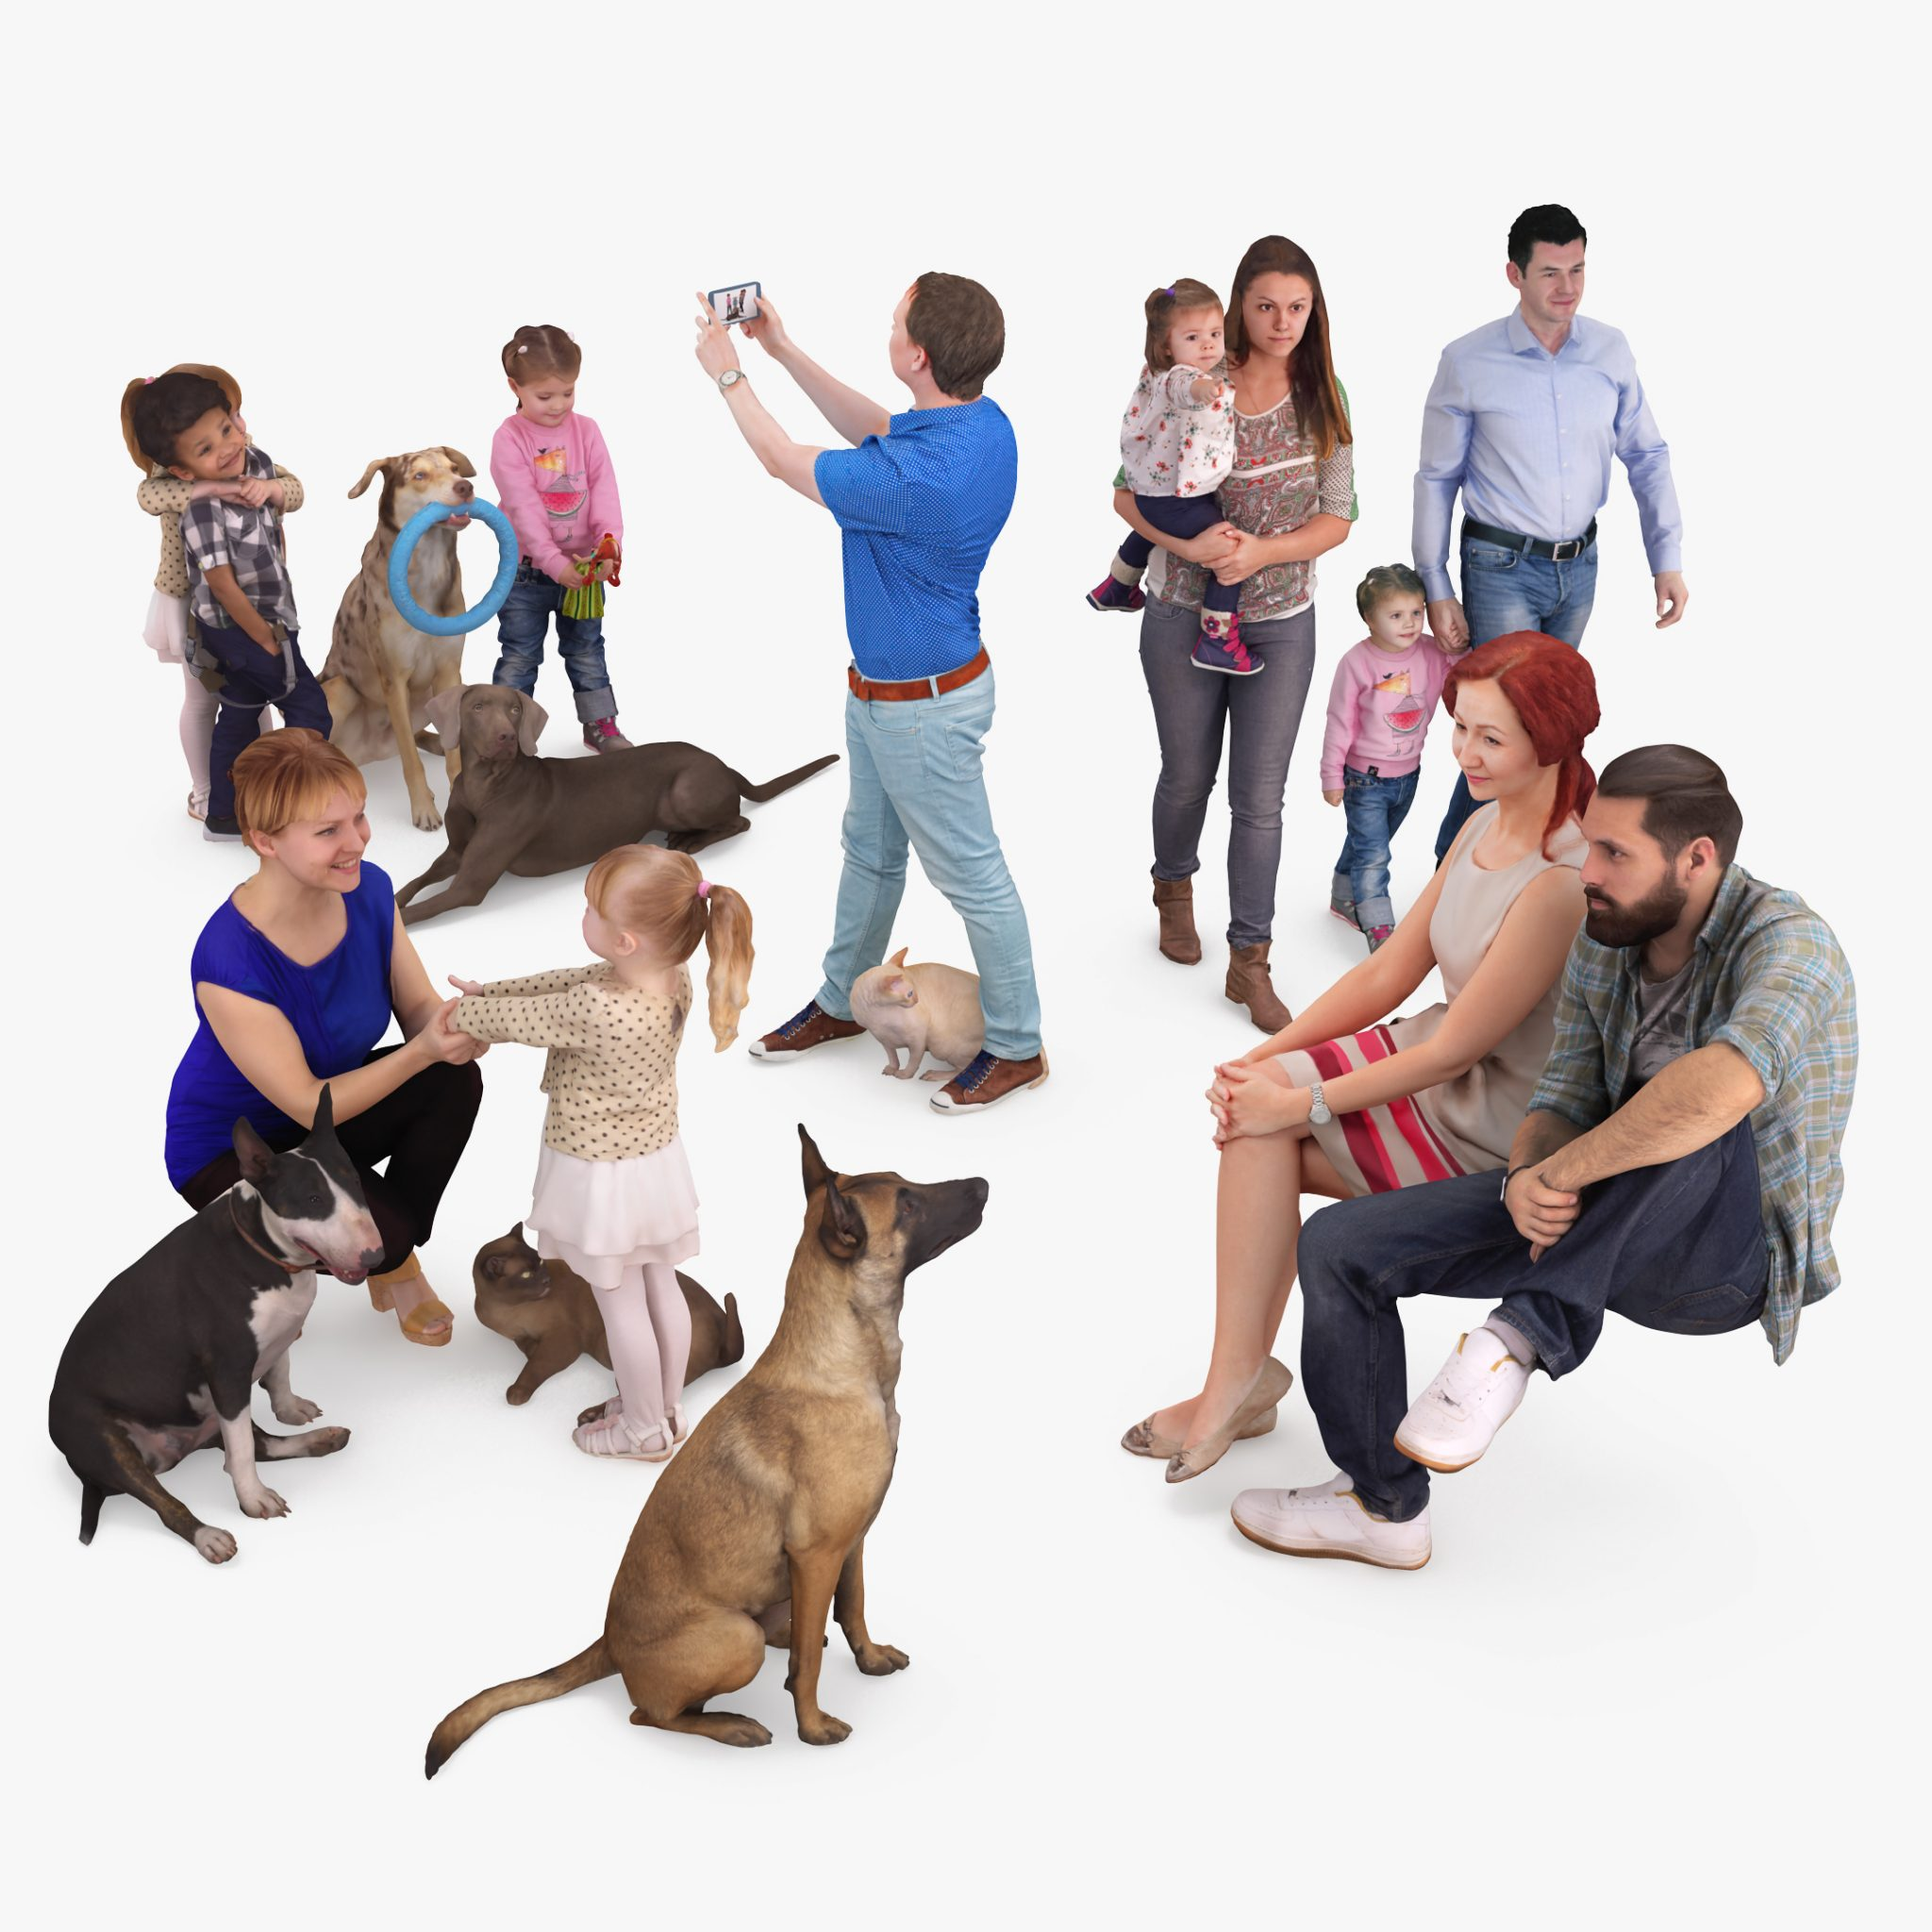 Pets and People Collection x14 3D Models | 3DTree Scanning Studio